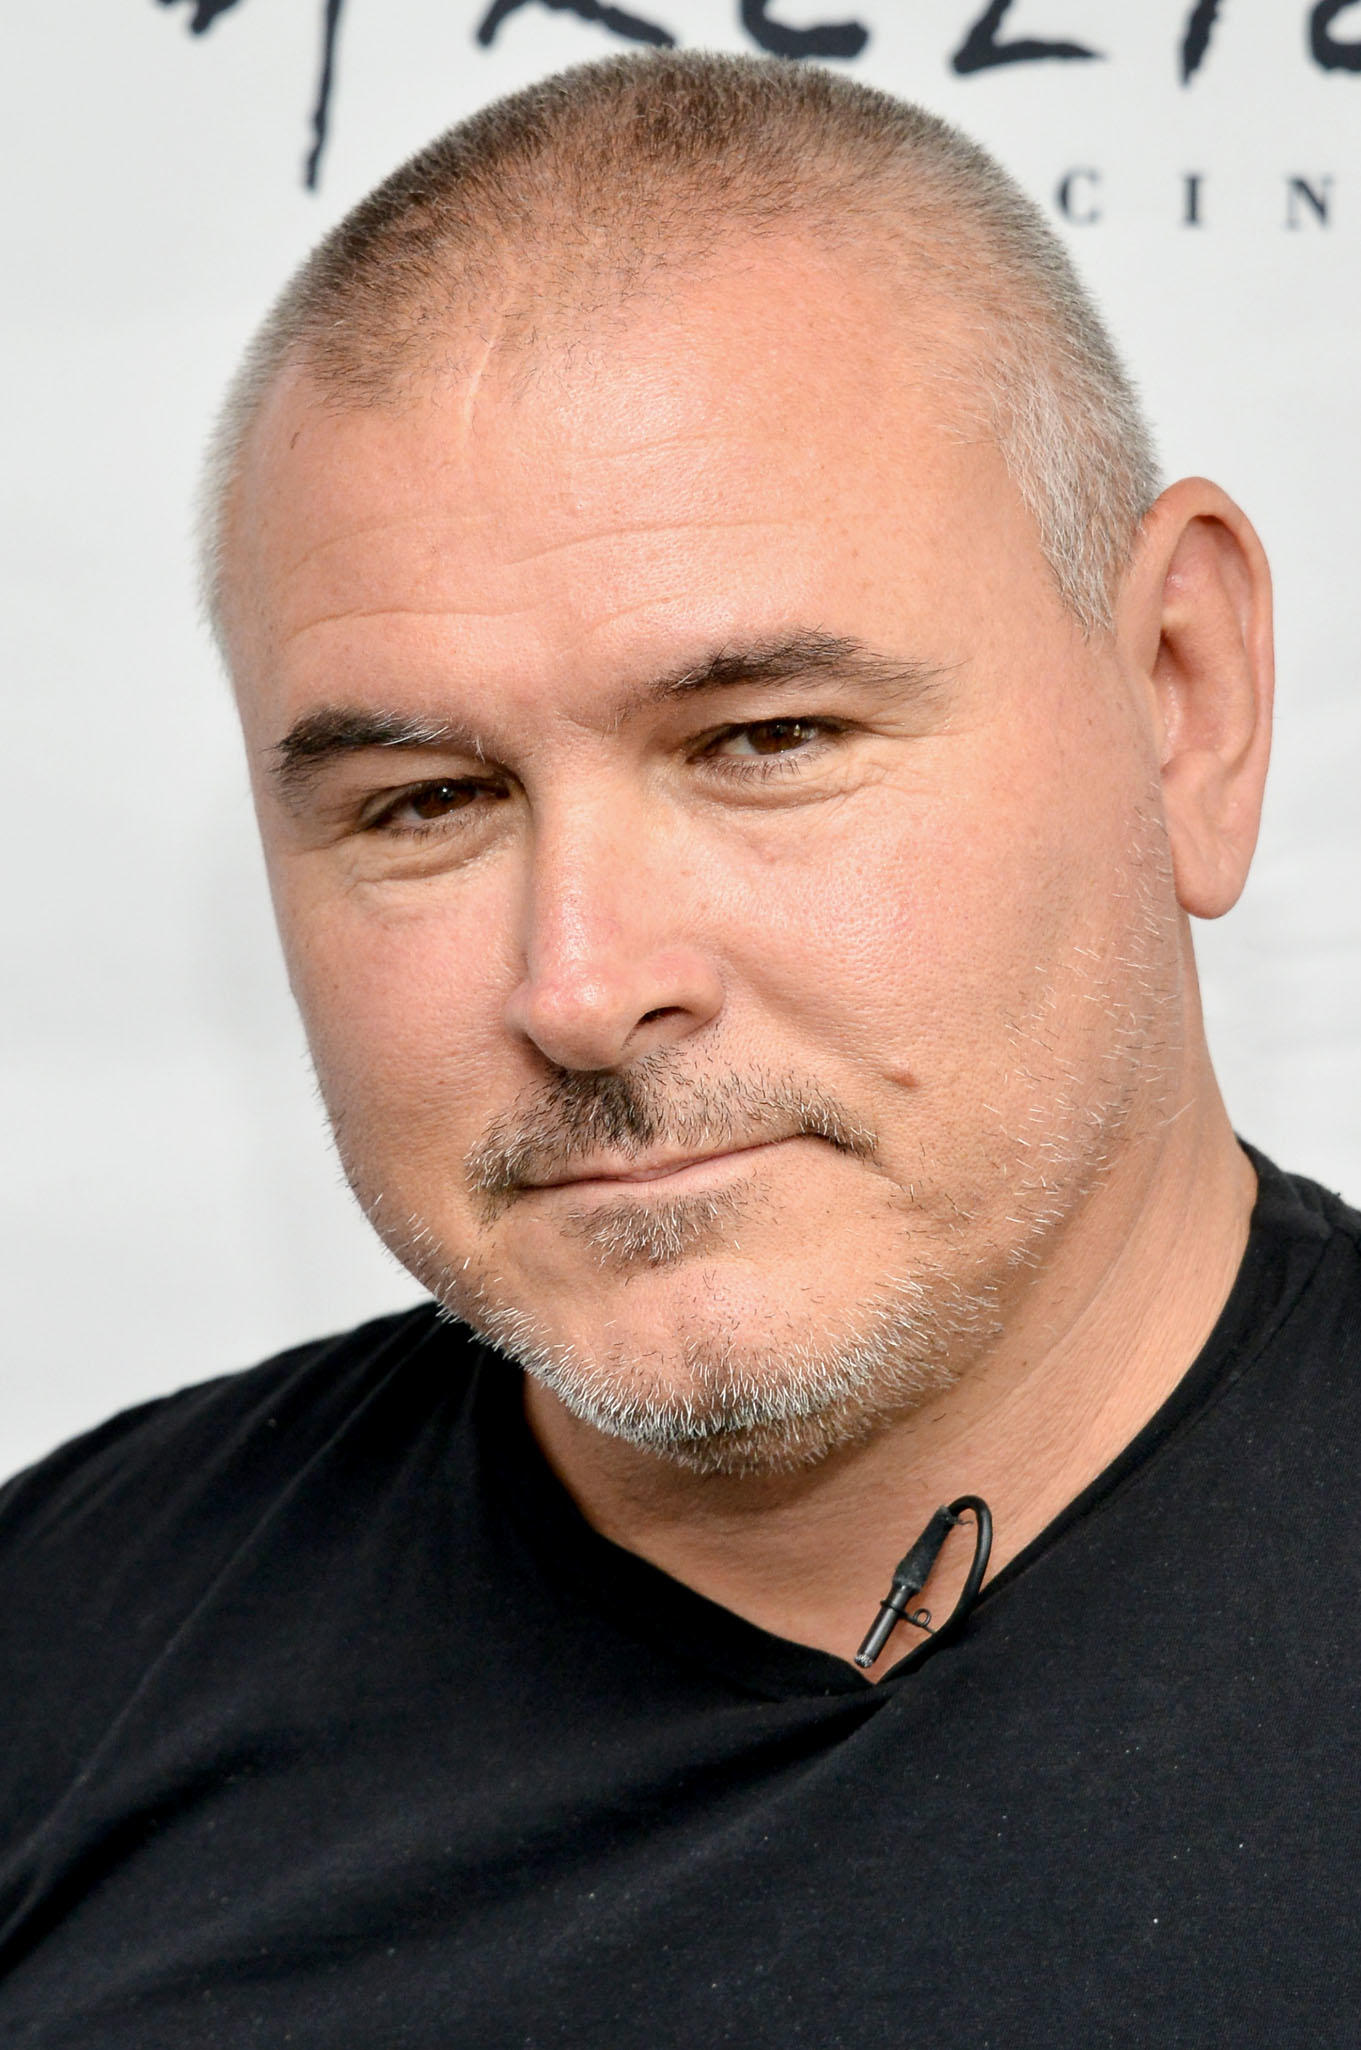 Tim Miller during the 2016 Los Angeles Film Festival.